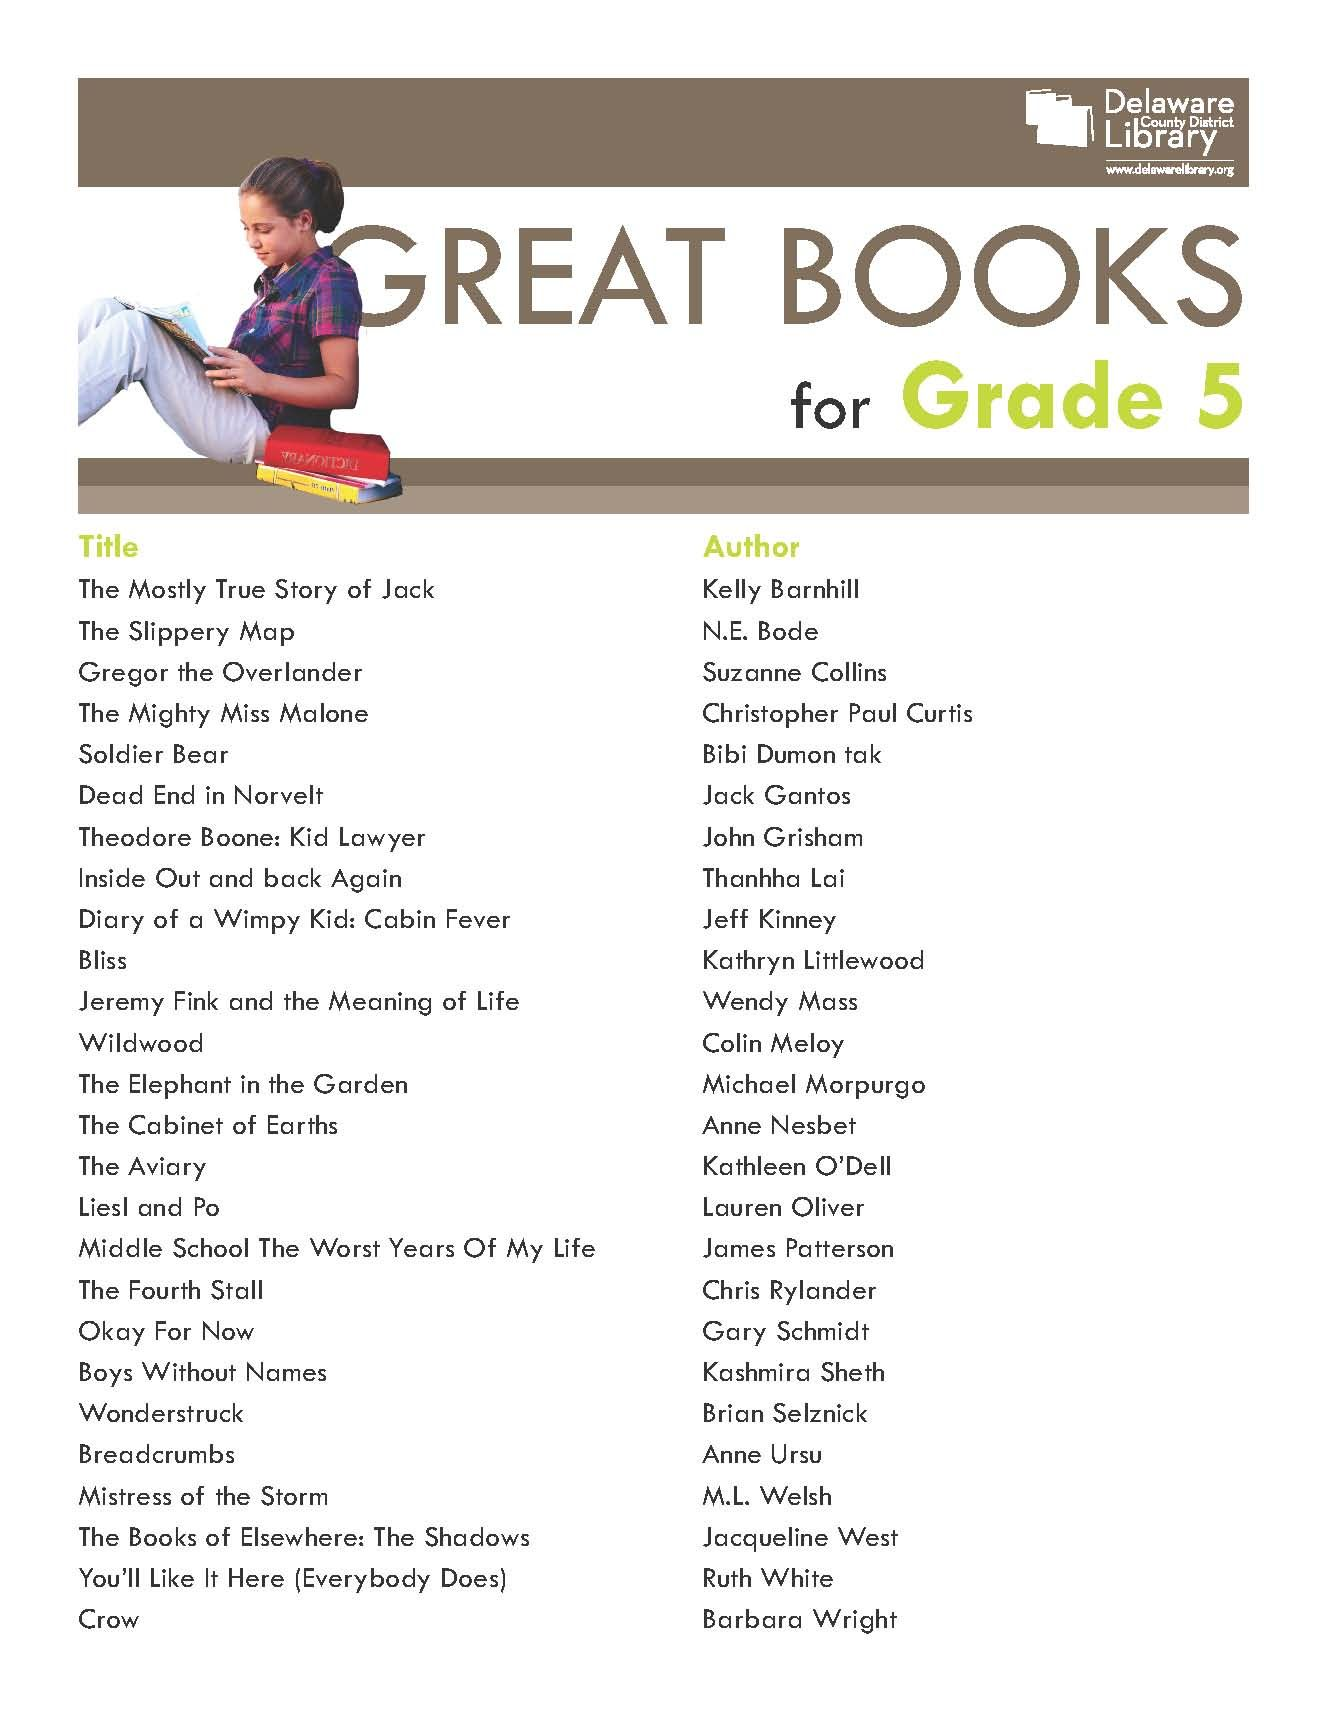 Pin By Flor Glez On Acts 1 8 A Way Of Life Classroom Books School Reading Homeschool Reading How to read books to learn english